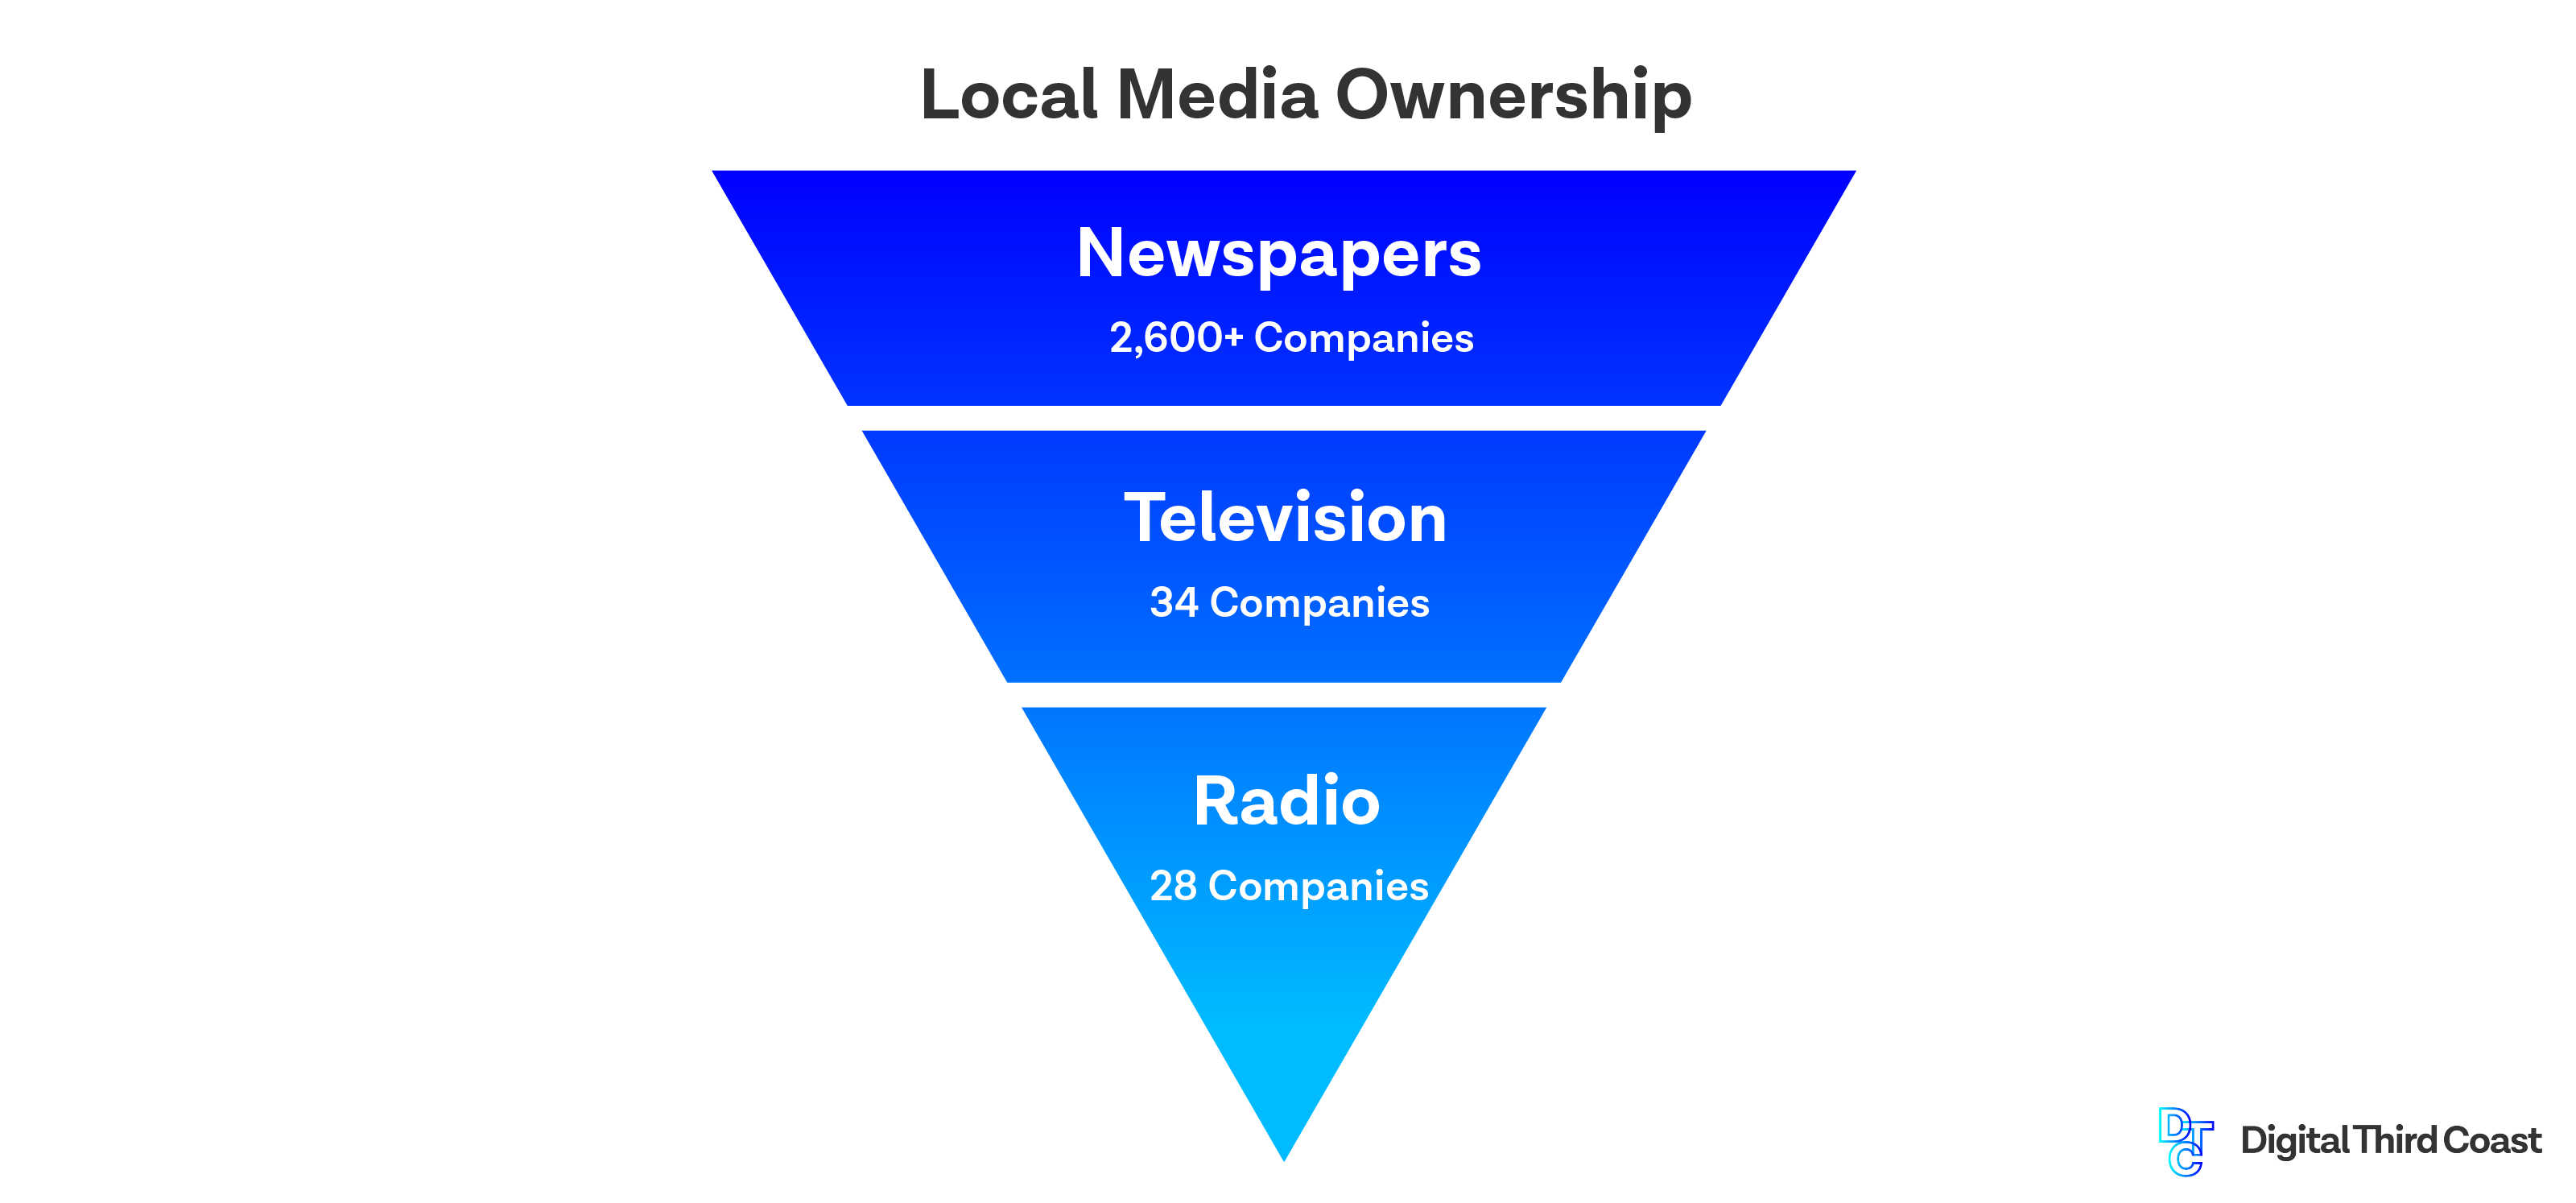 Pyramid illustrating local media ownership